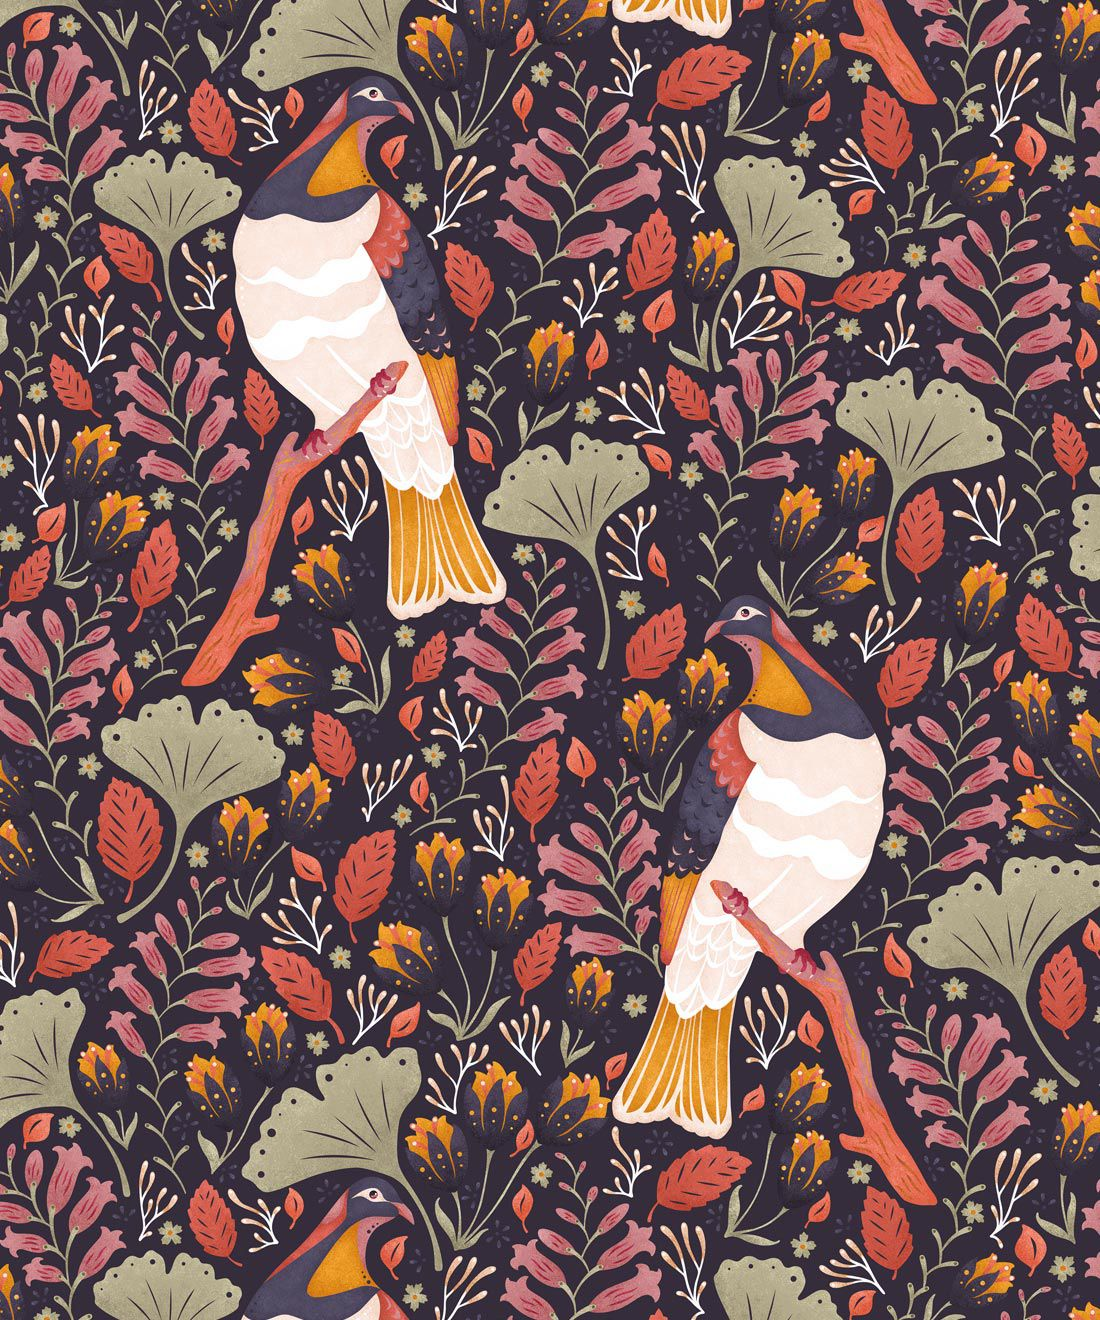 Kereru Wallpaper • Wood Pigeon• Bird Wallpaper • Orange Wallpaper • Midnight